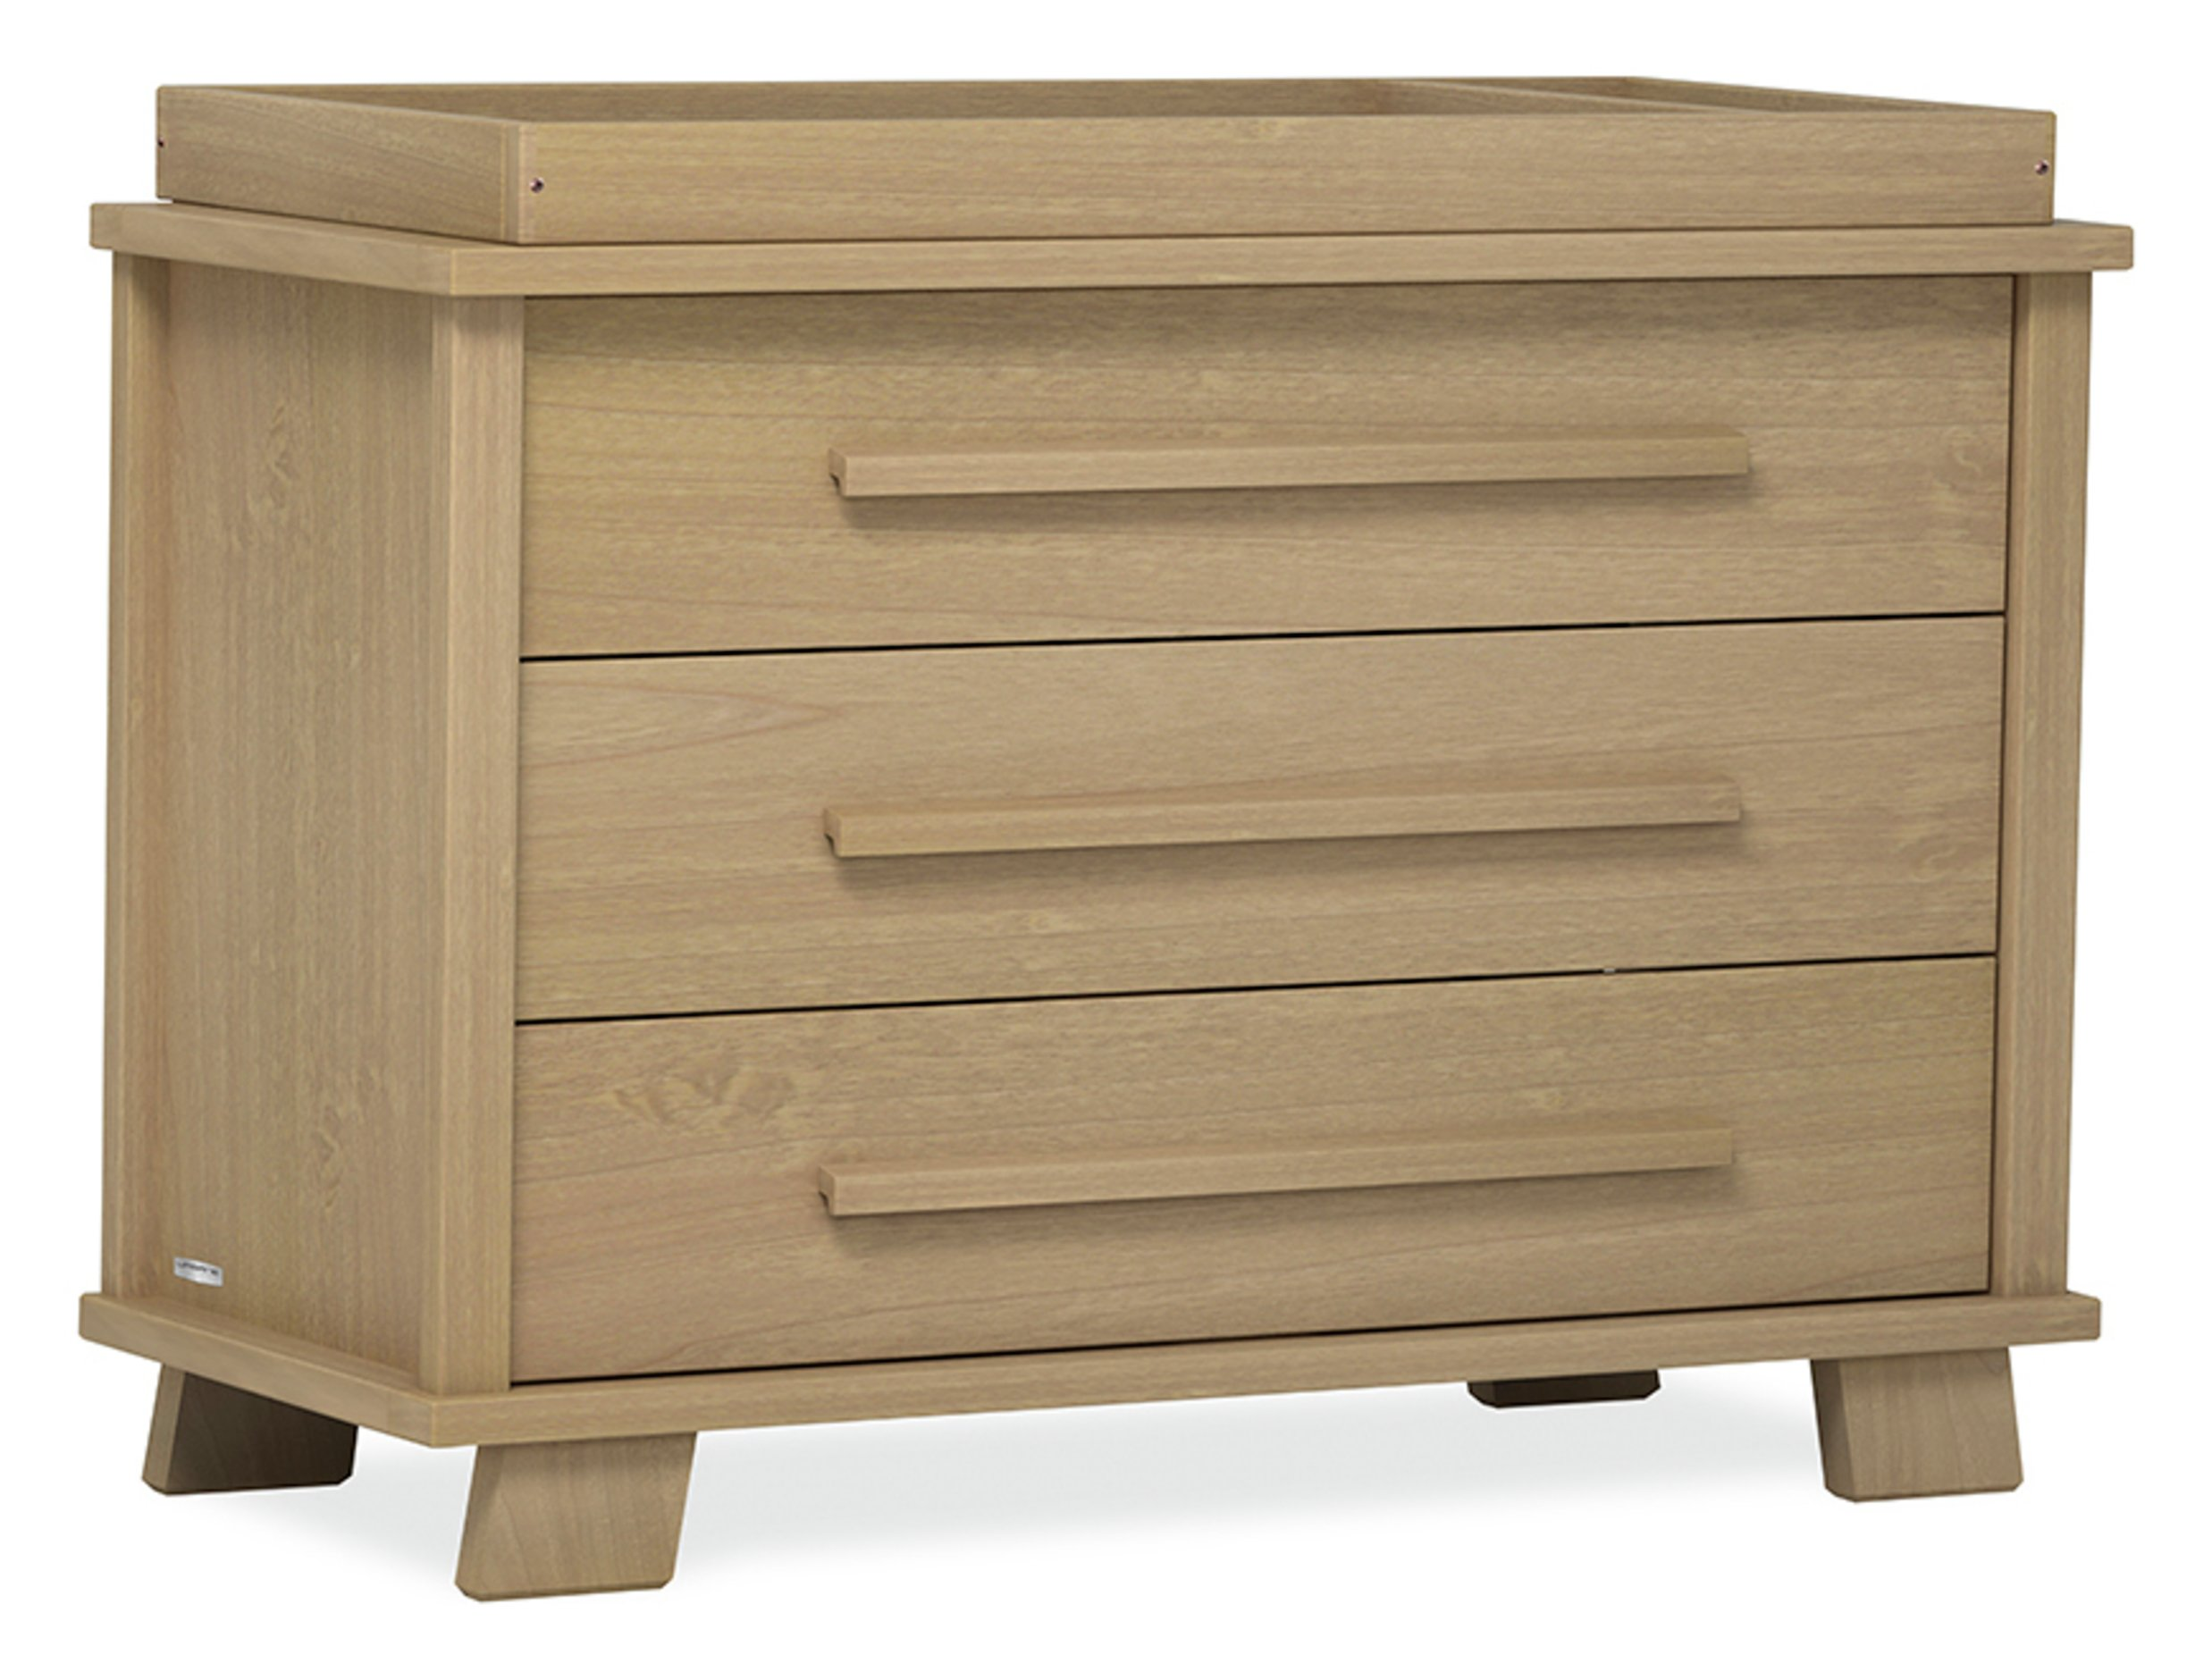 Image of Lucia 3 Drawer Chest - Almond